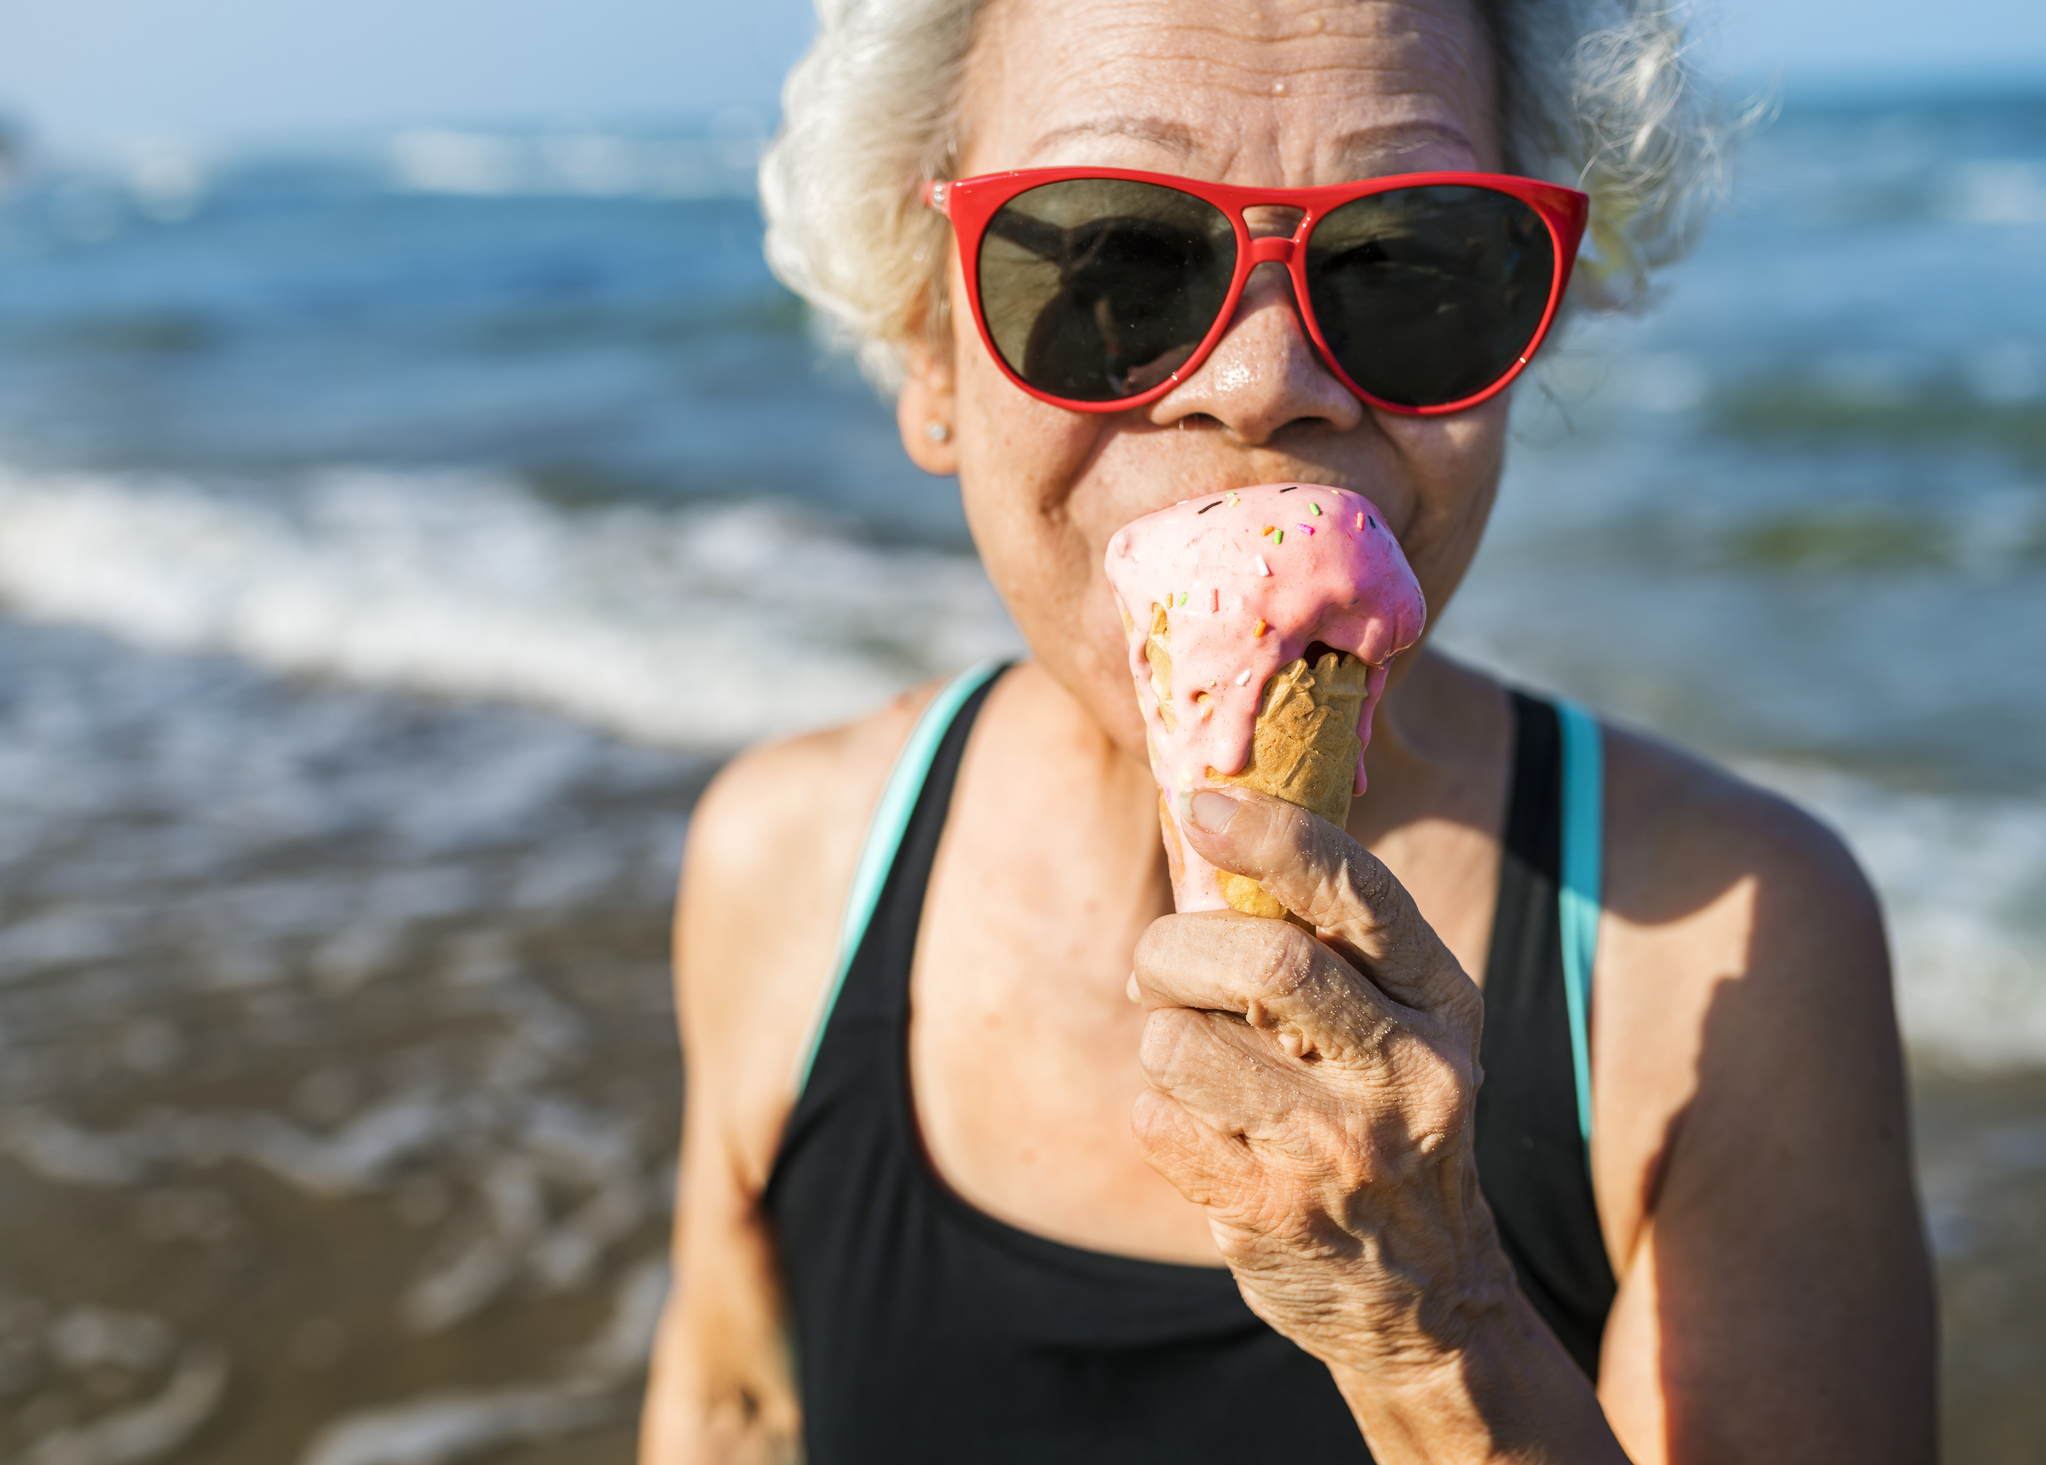 Staying positive can be helpful in boosting brain activity and happiness in older age.